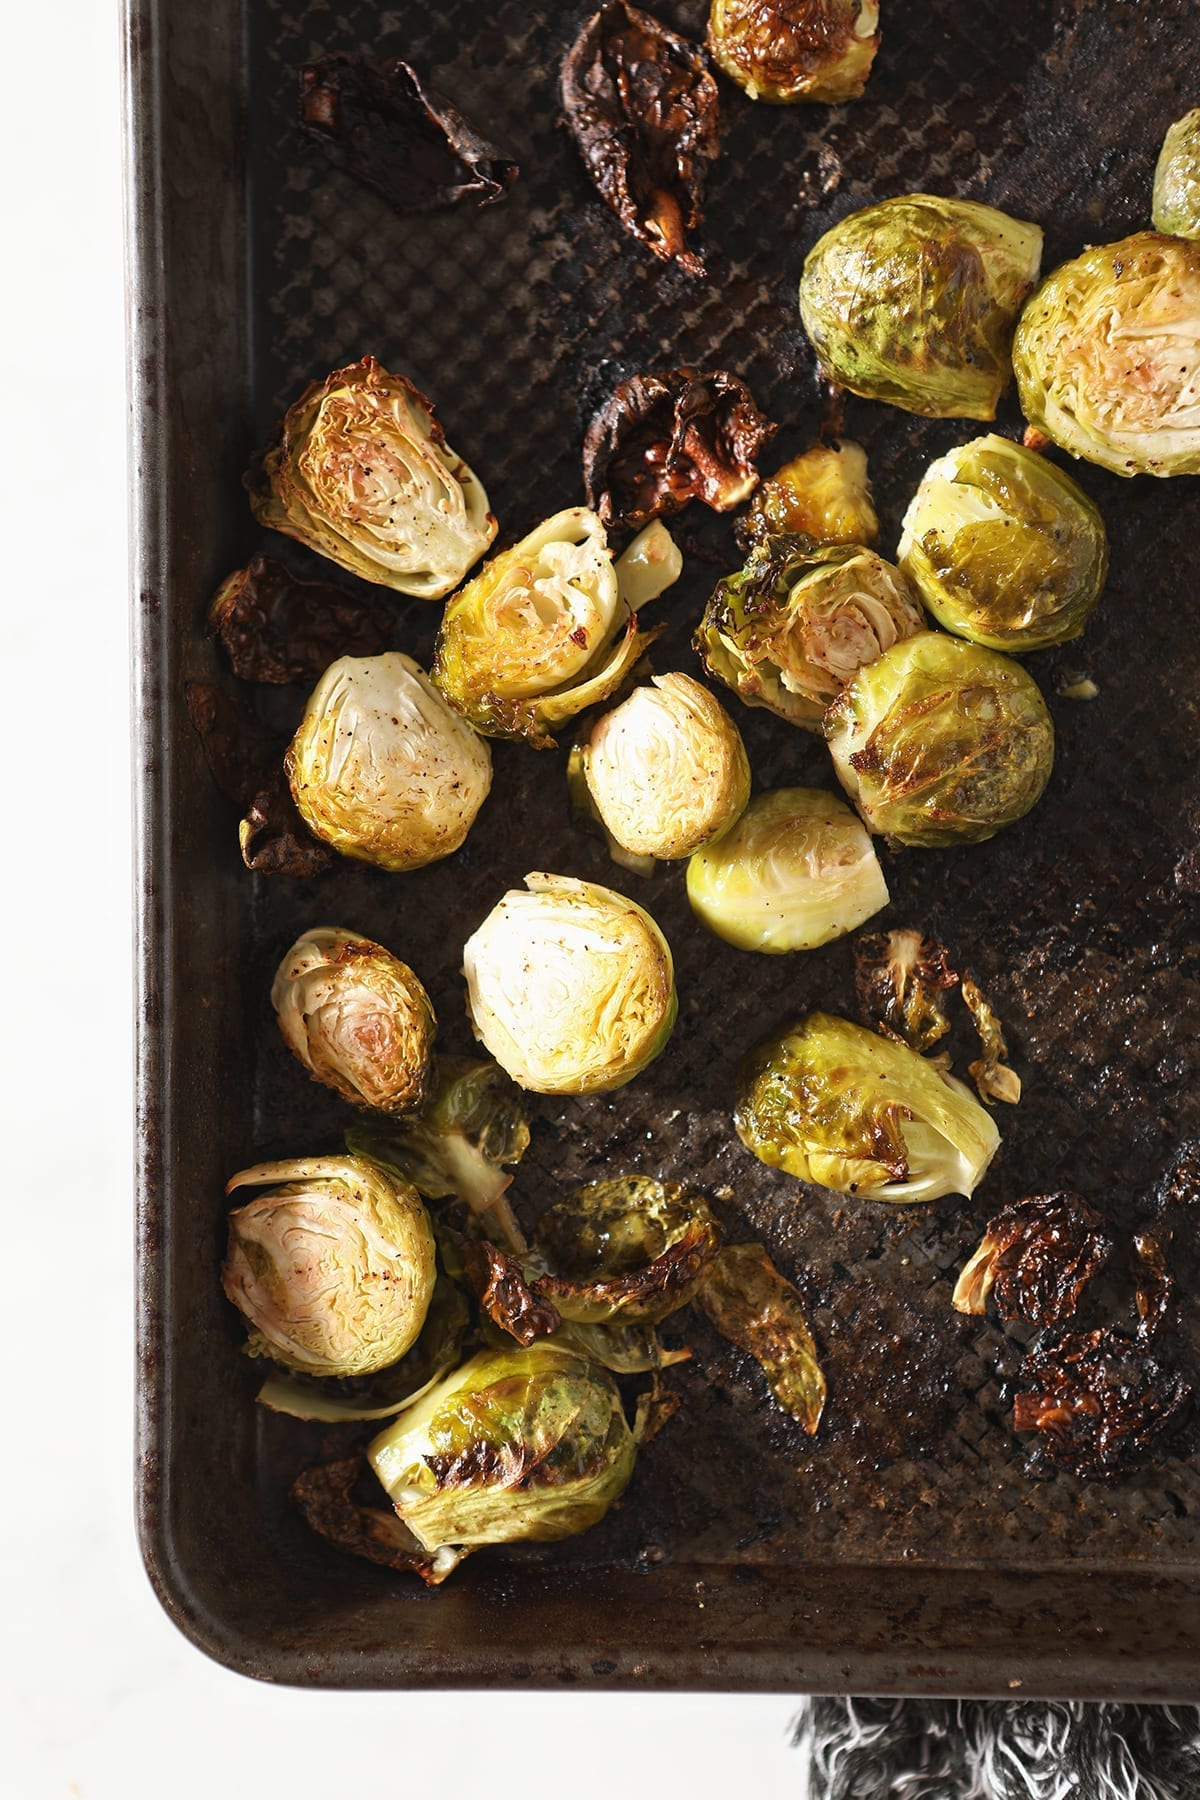 Brussels sprouts on a baking sheet after baking